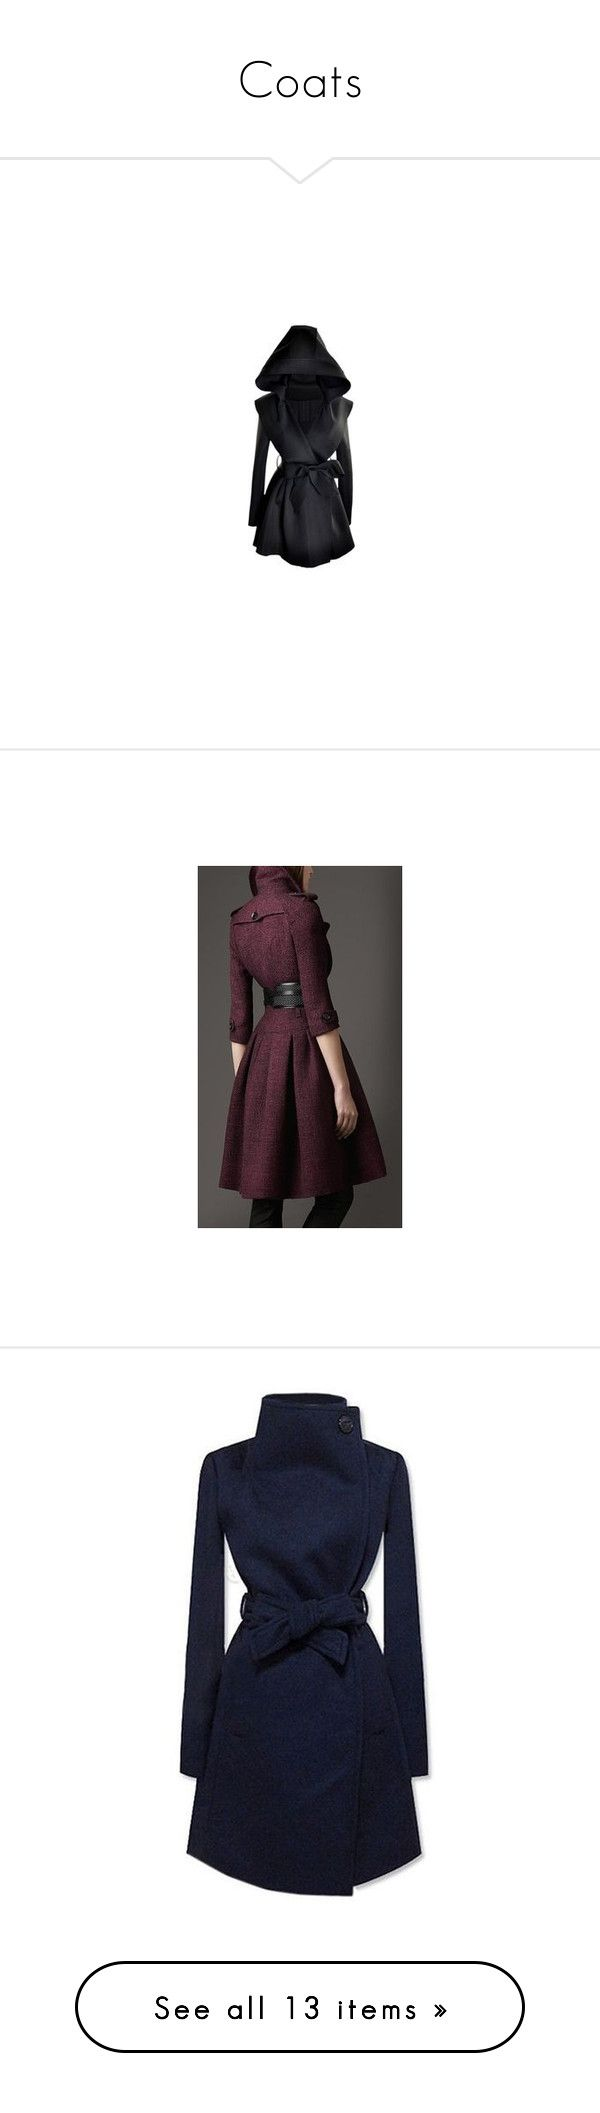 """""""Coats"""" by giselsimon ❤ liked on Polyvore featuring outerwear, coats, woolen trench coat, blue coat, blue trench coats, trench coat, blue wool coat, coats & jackets, brown coat and house of fraser"""